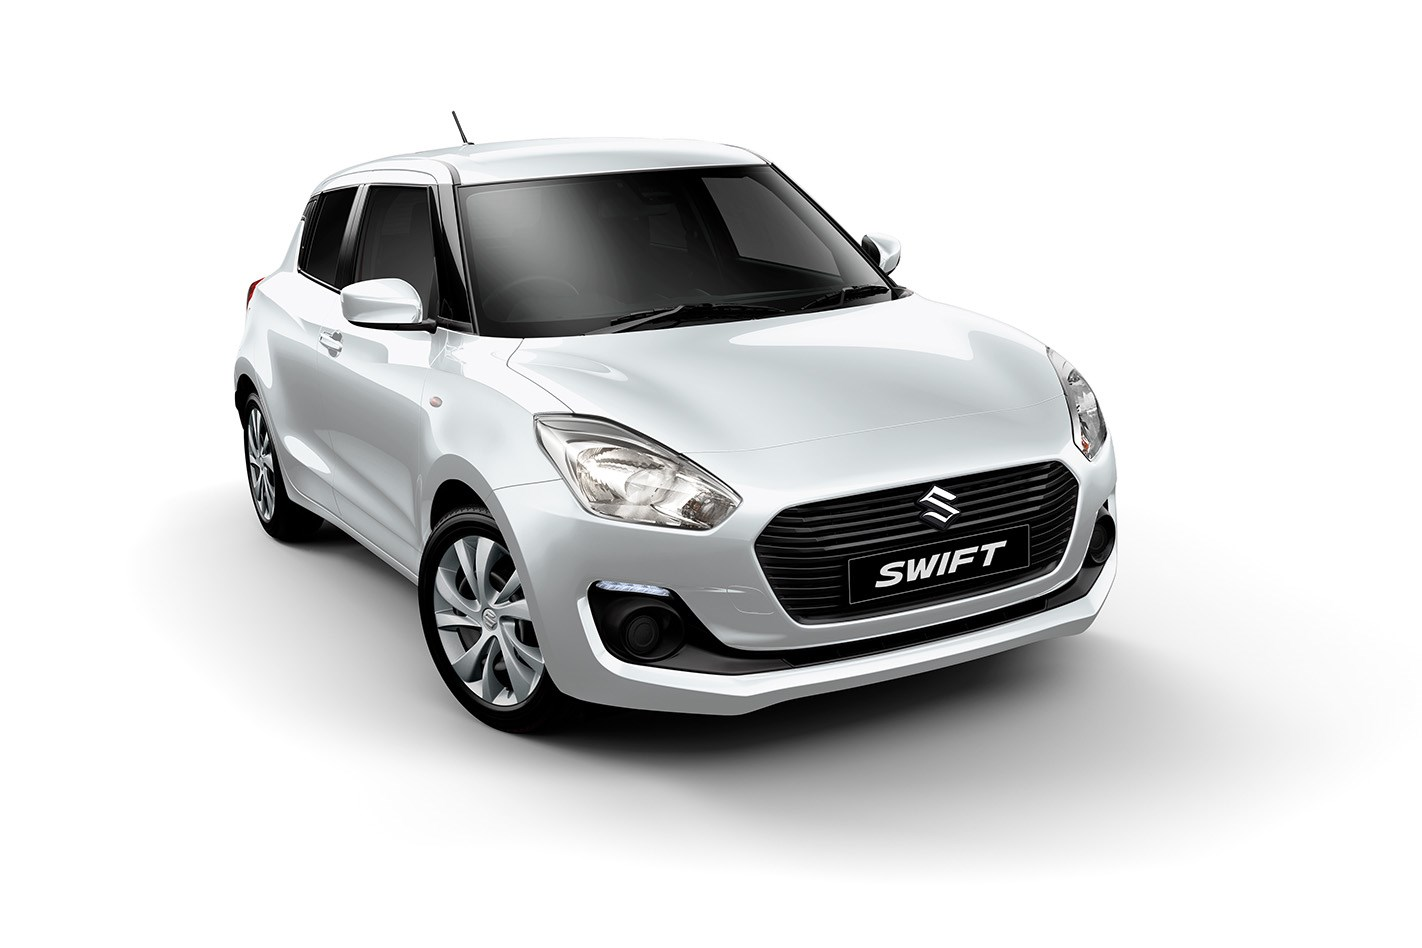 Suzuki Swift 2018 Review, Price & Features